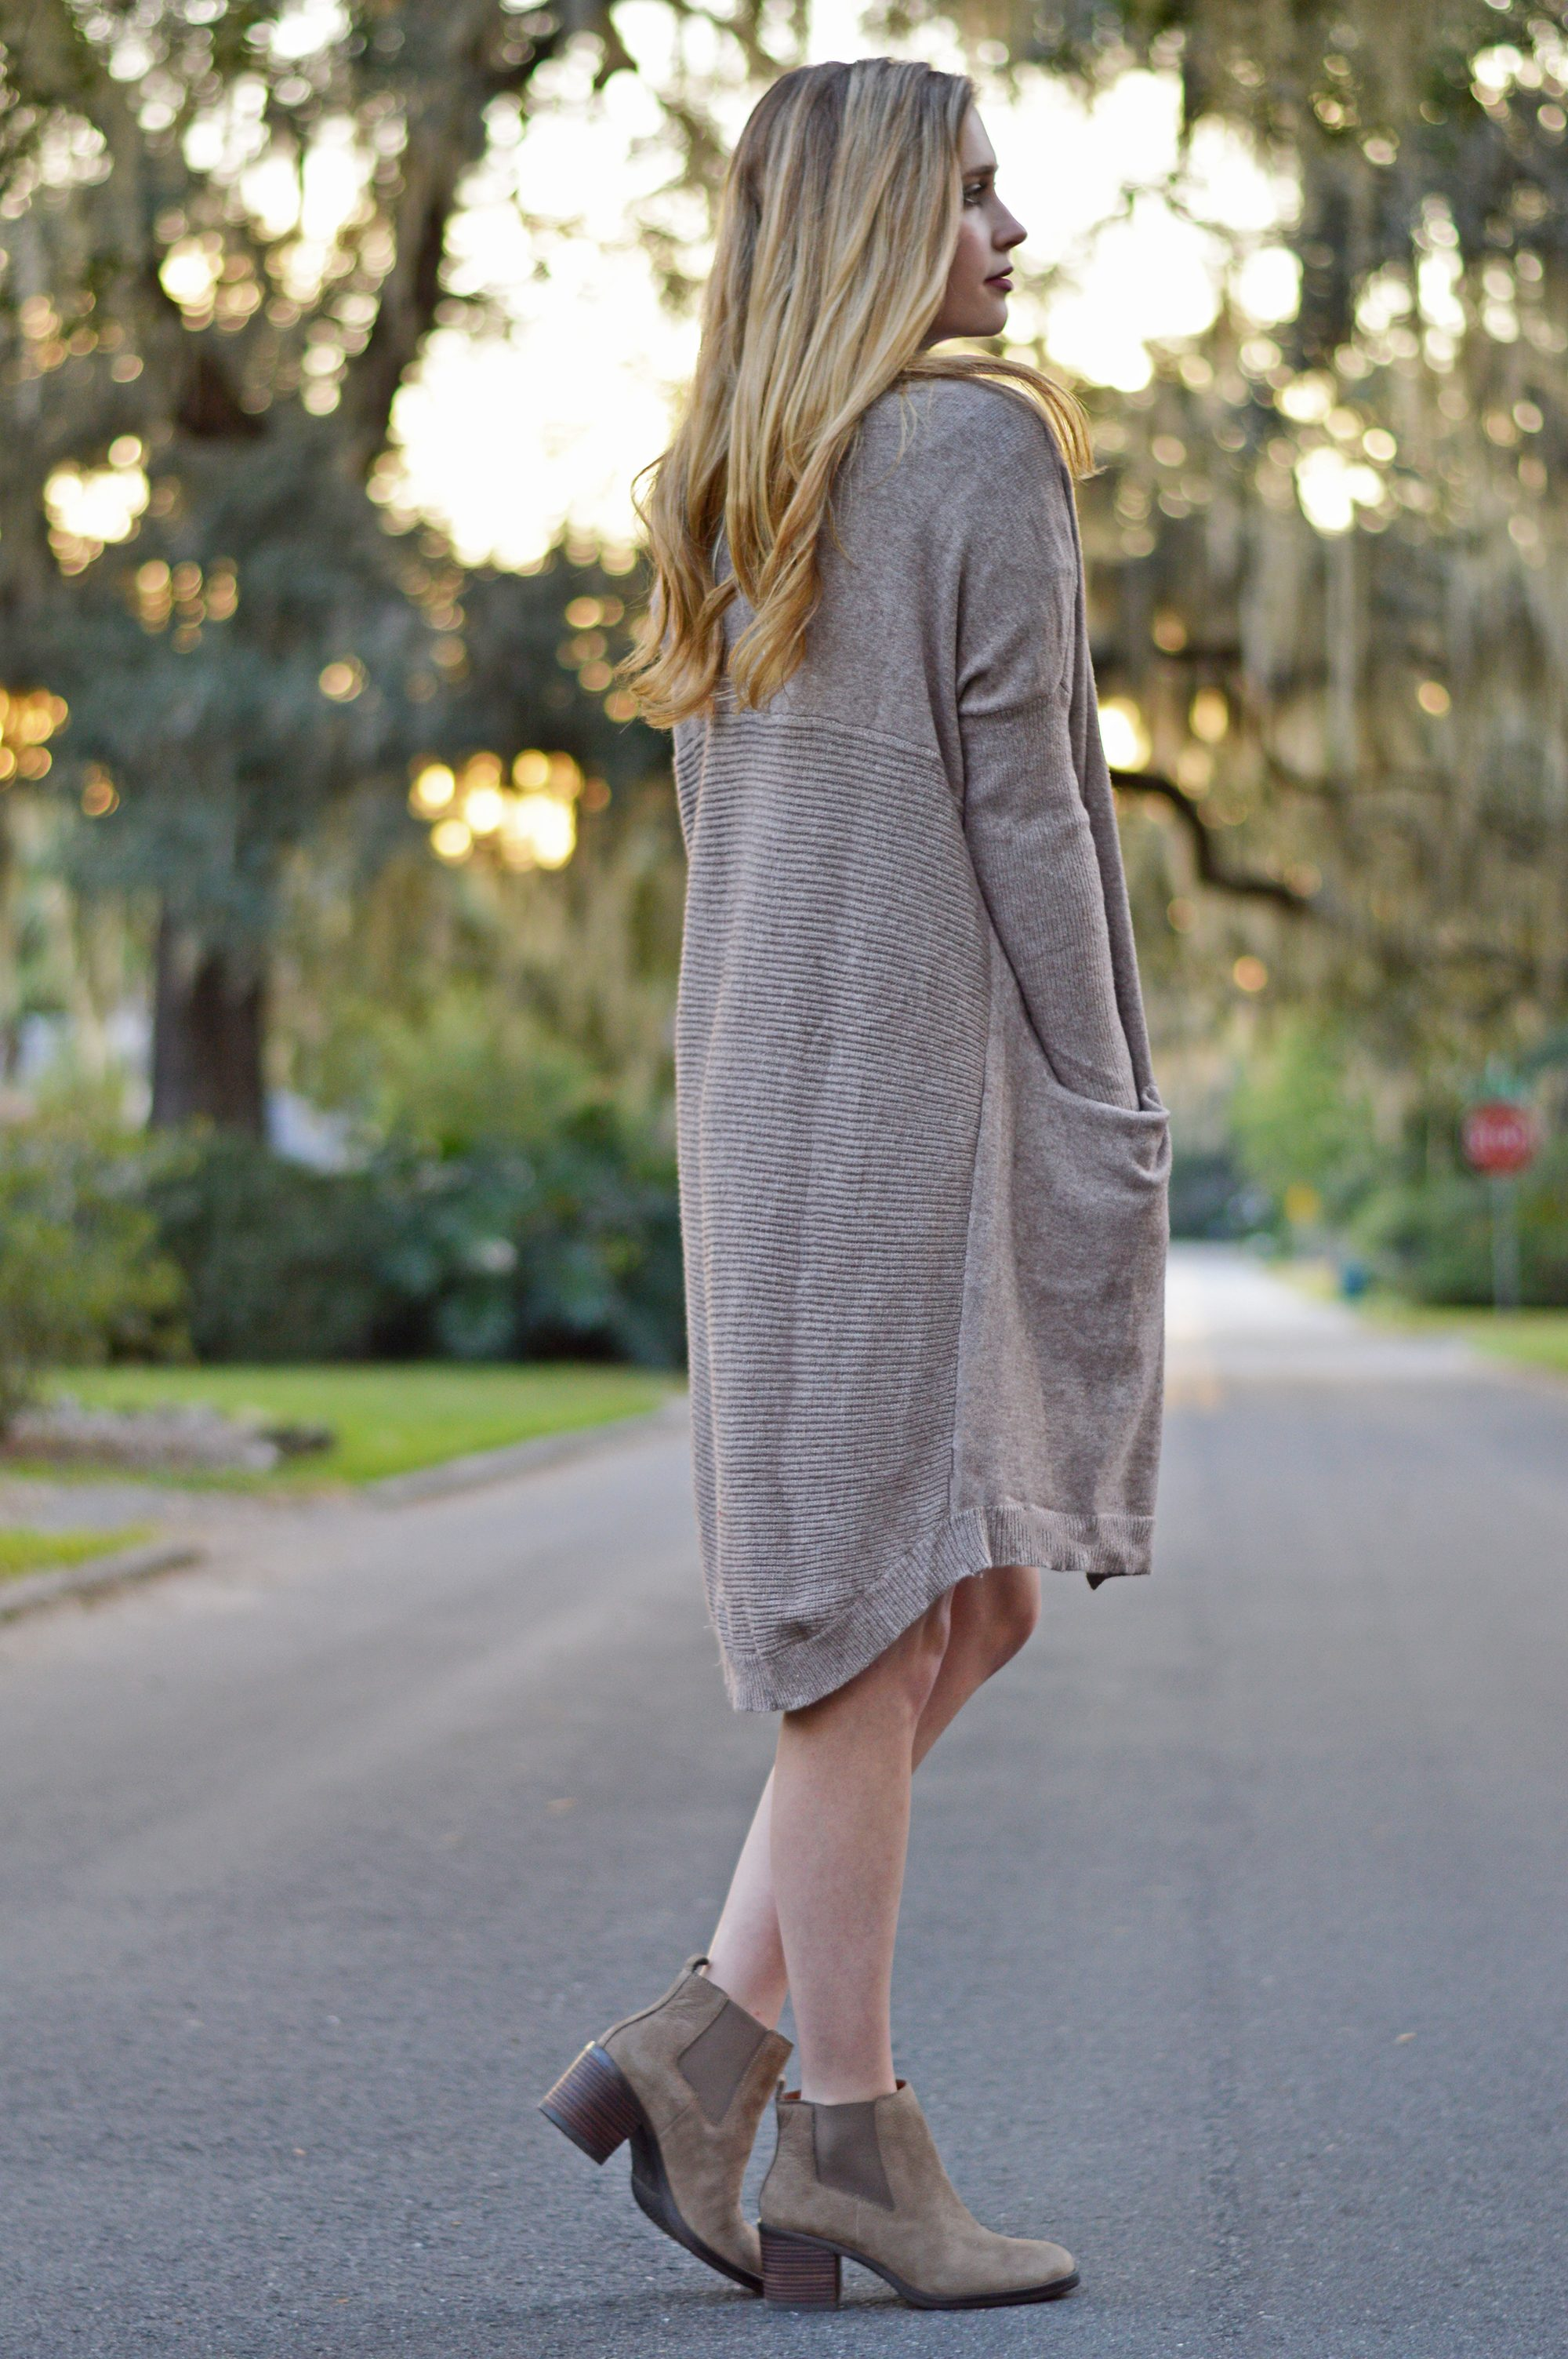 styelled-blog-sweater-weather-fall-70s-style-fashion-blogger-ootd-booties-dress-october-18